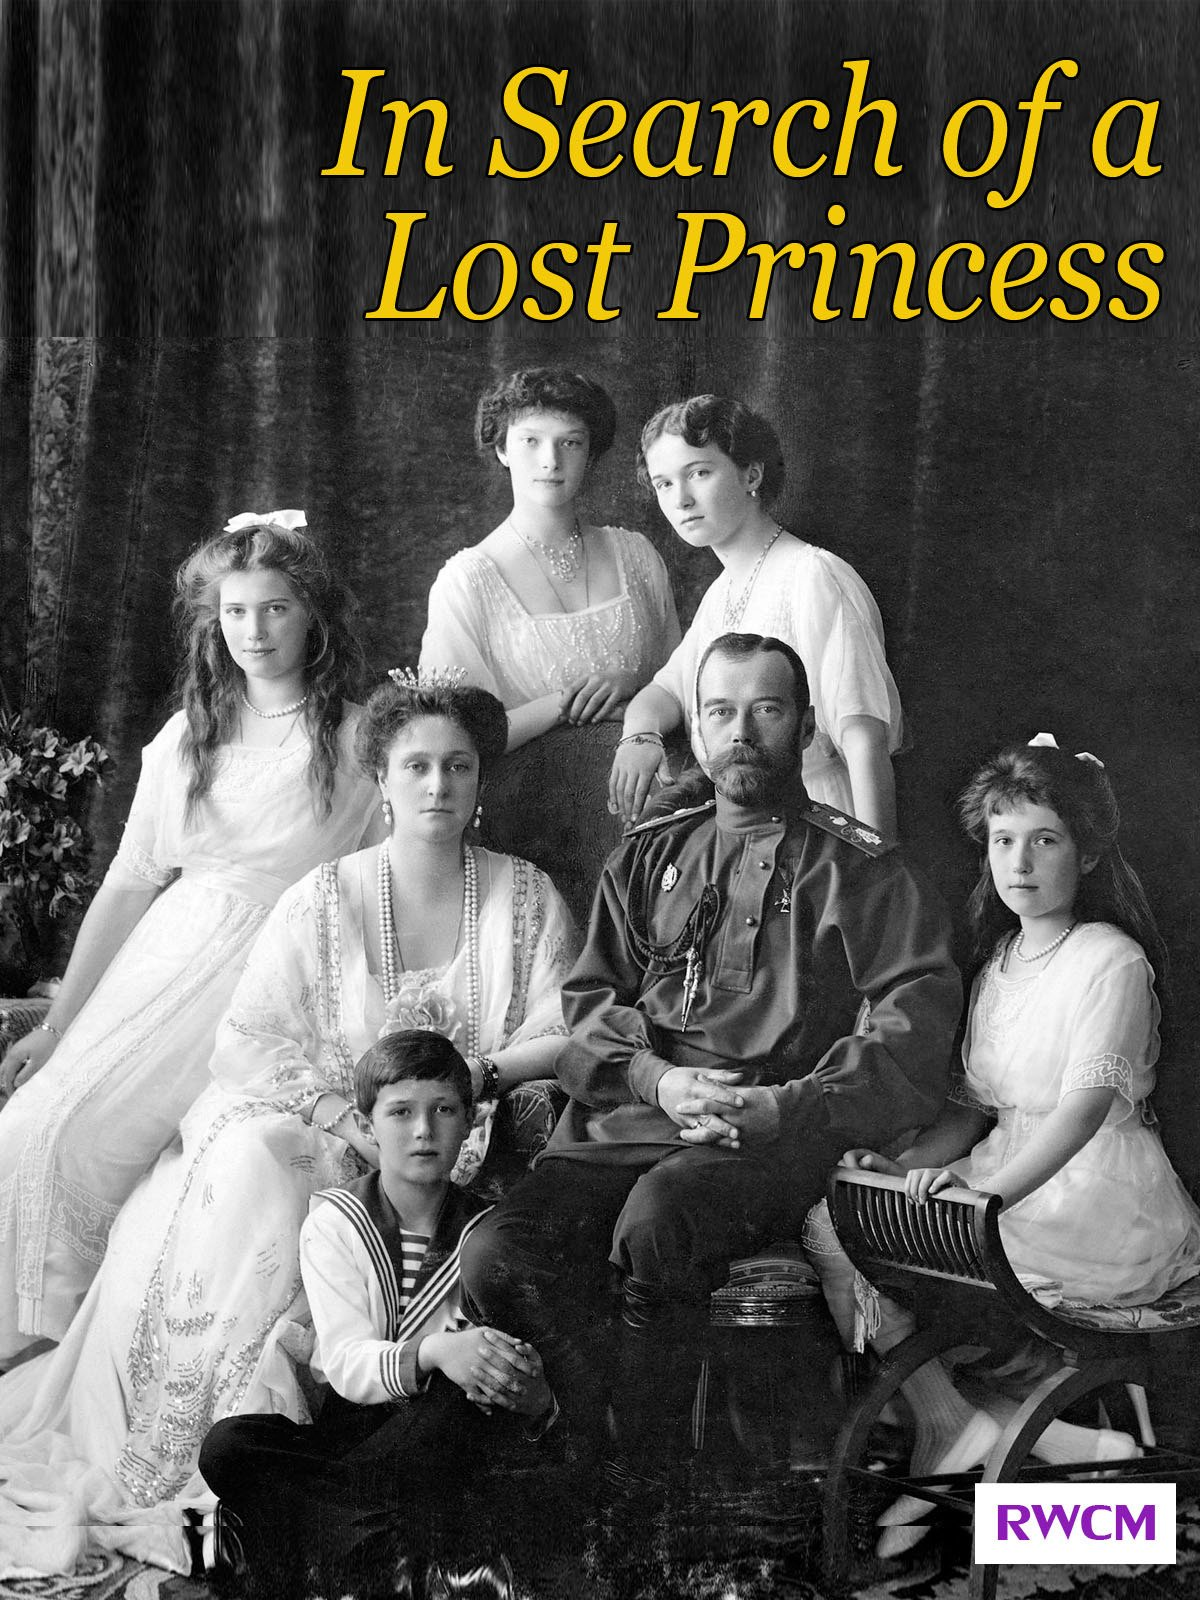 In Search of a Lost Princess